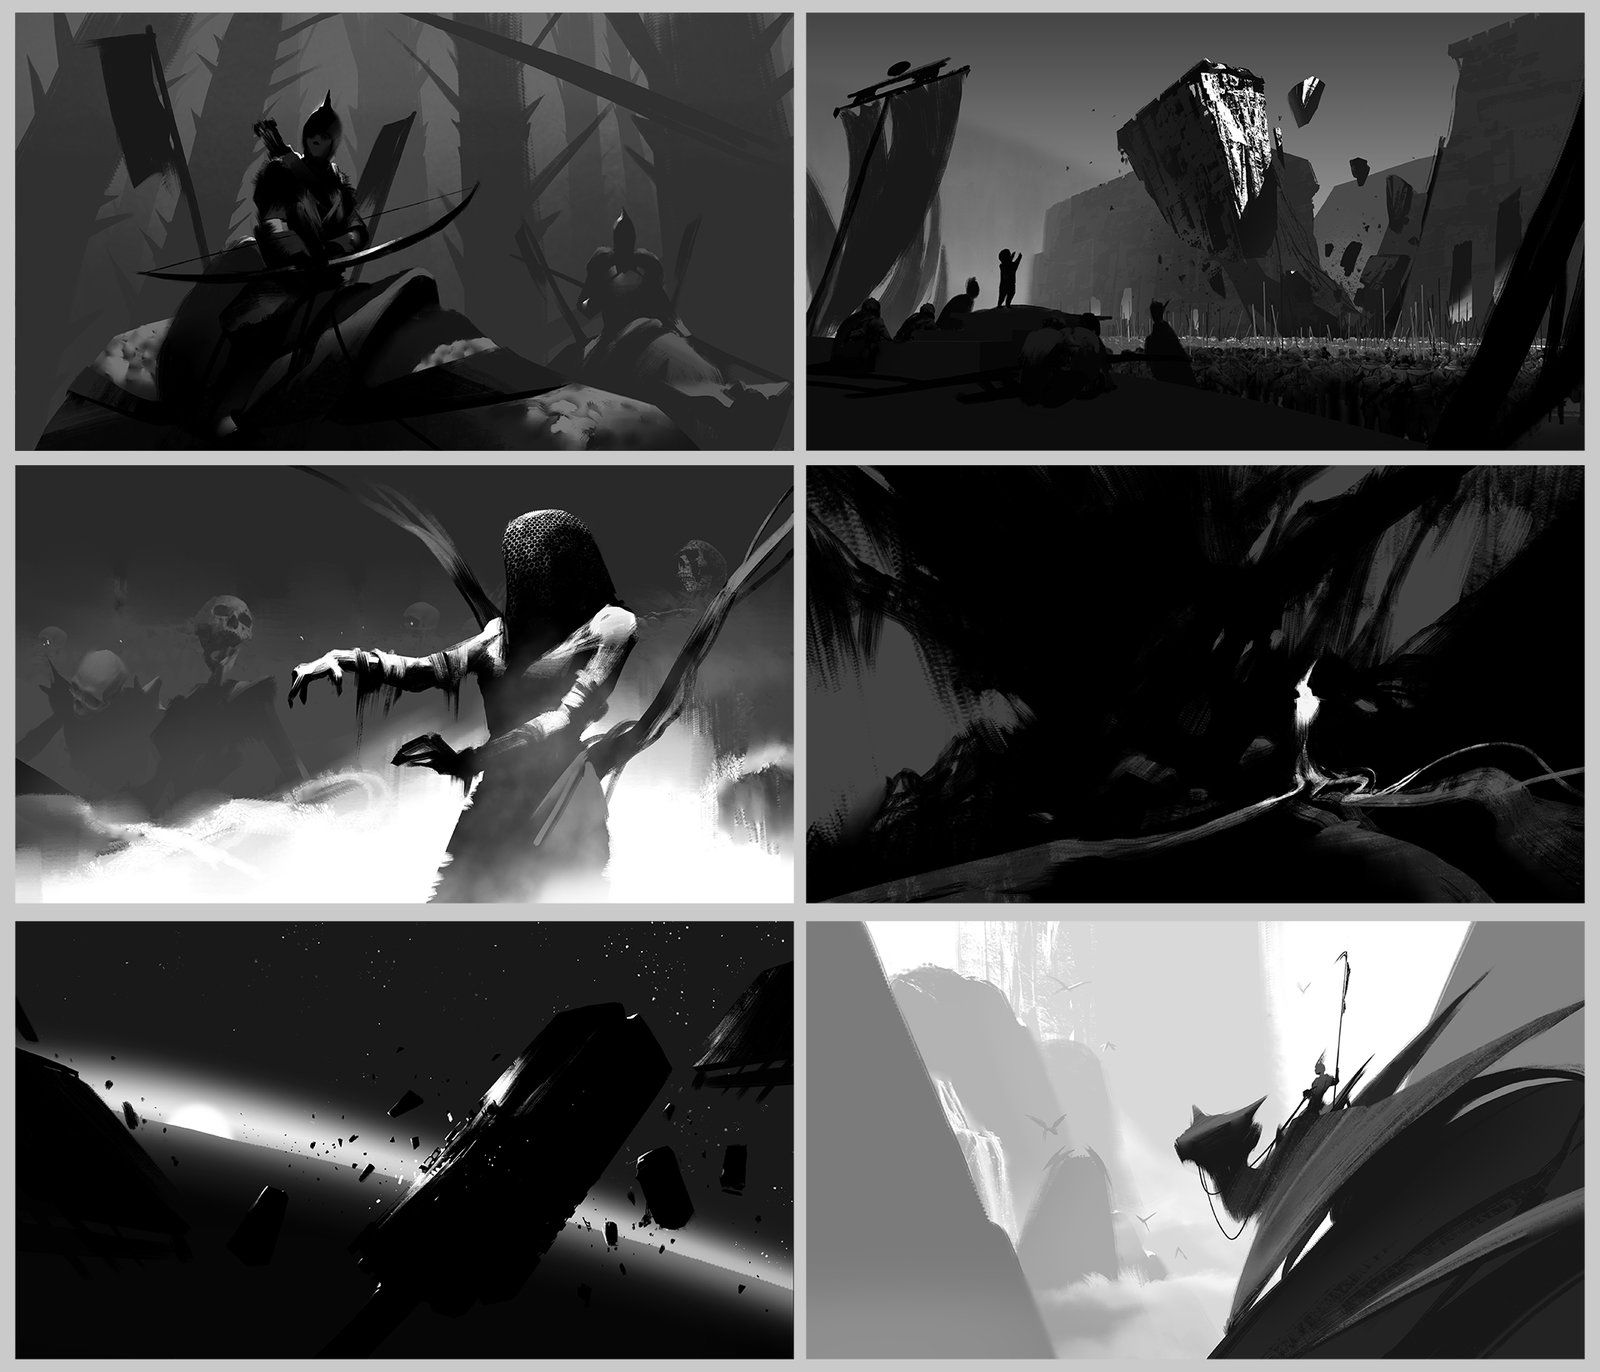 Composition Sketches, Sung Choi on ArtStation at https://www.artstation.com/artwork/composition-sketches-007978a1-2985-4454-aac3-6056350eb847